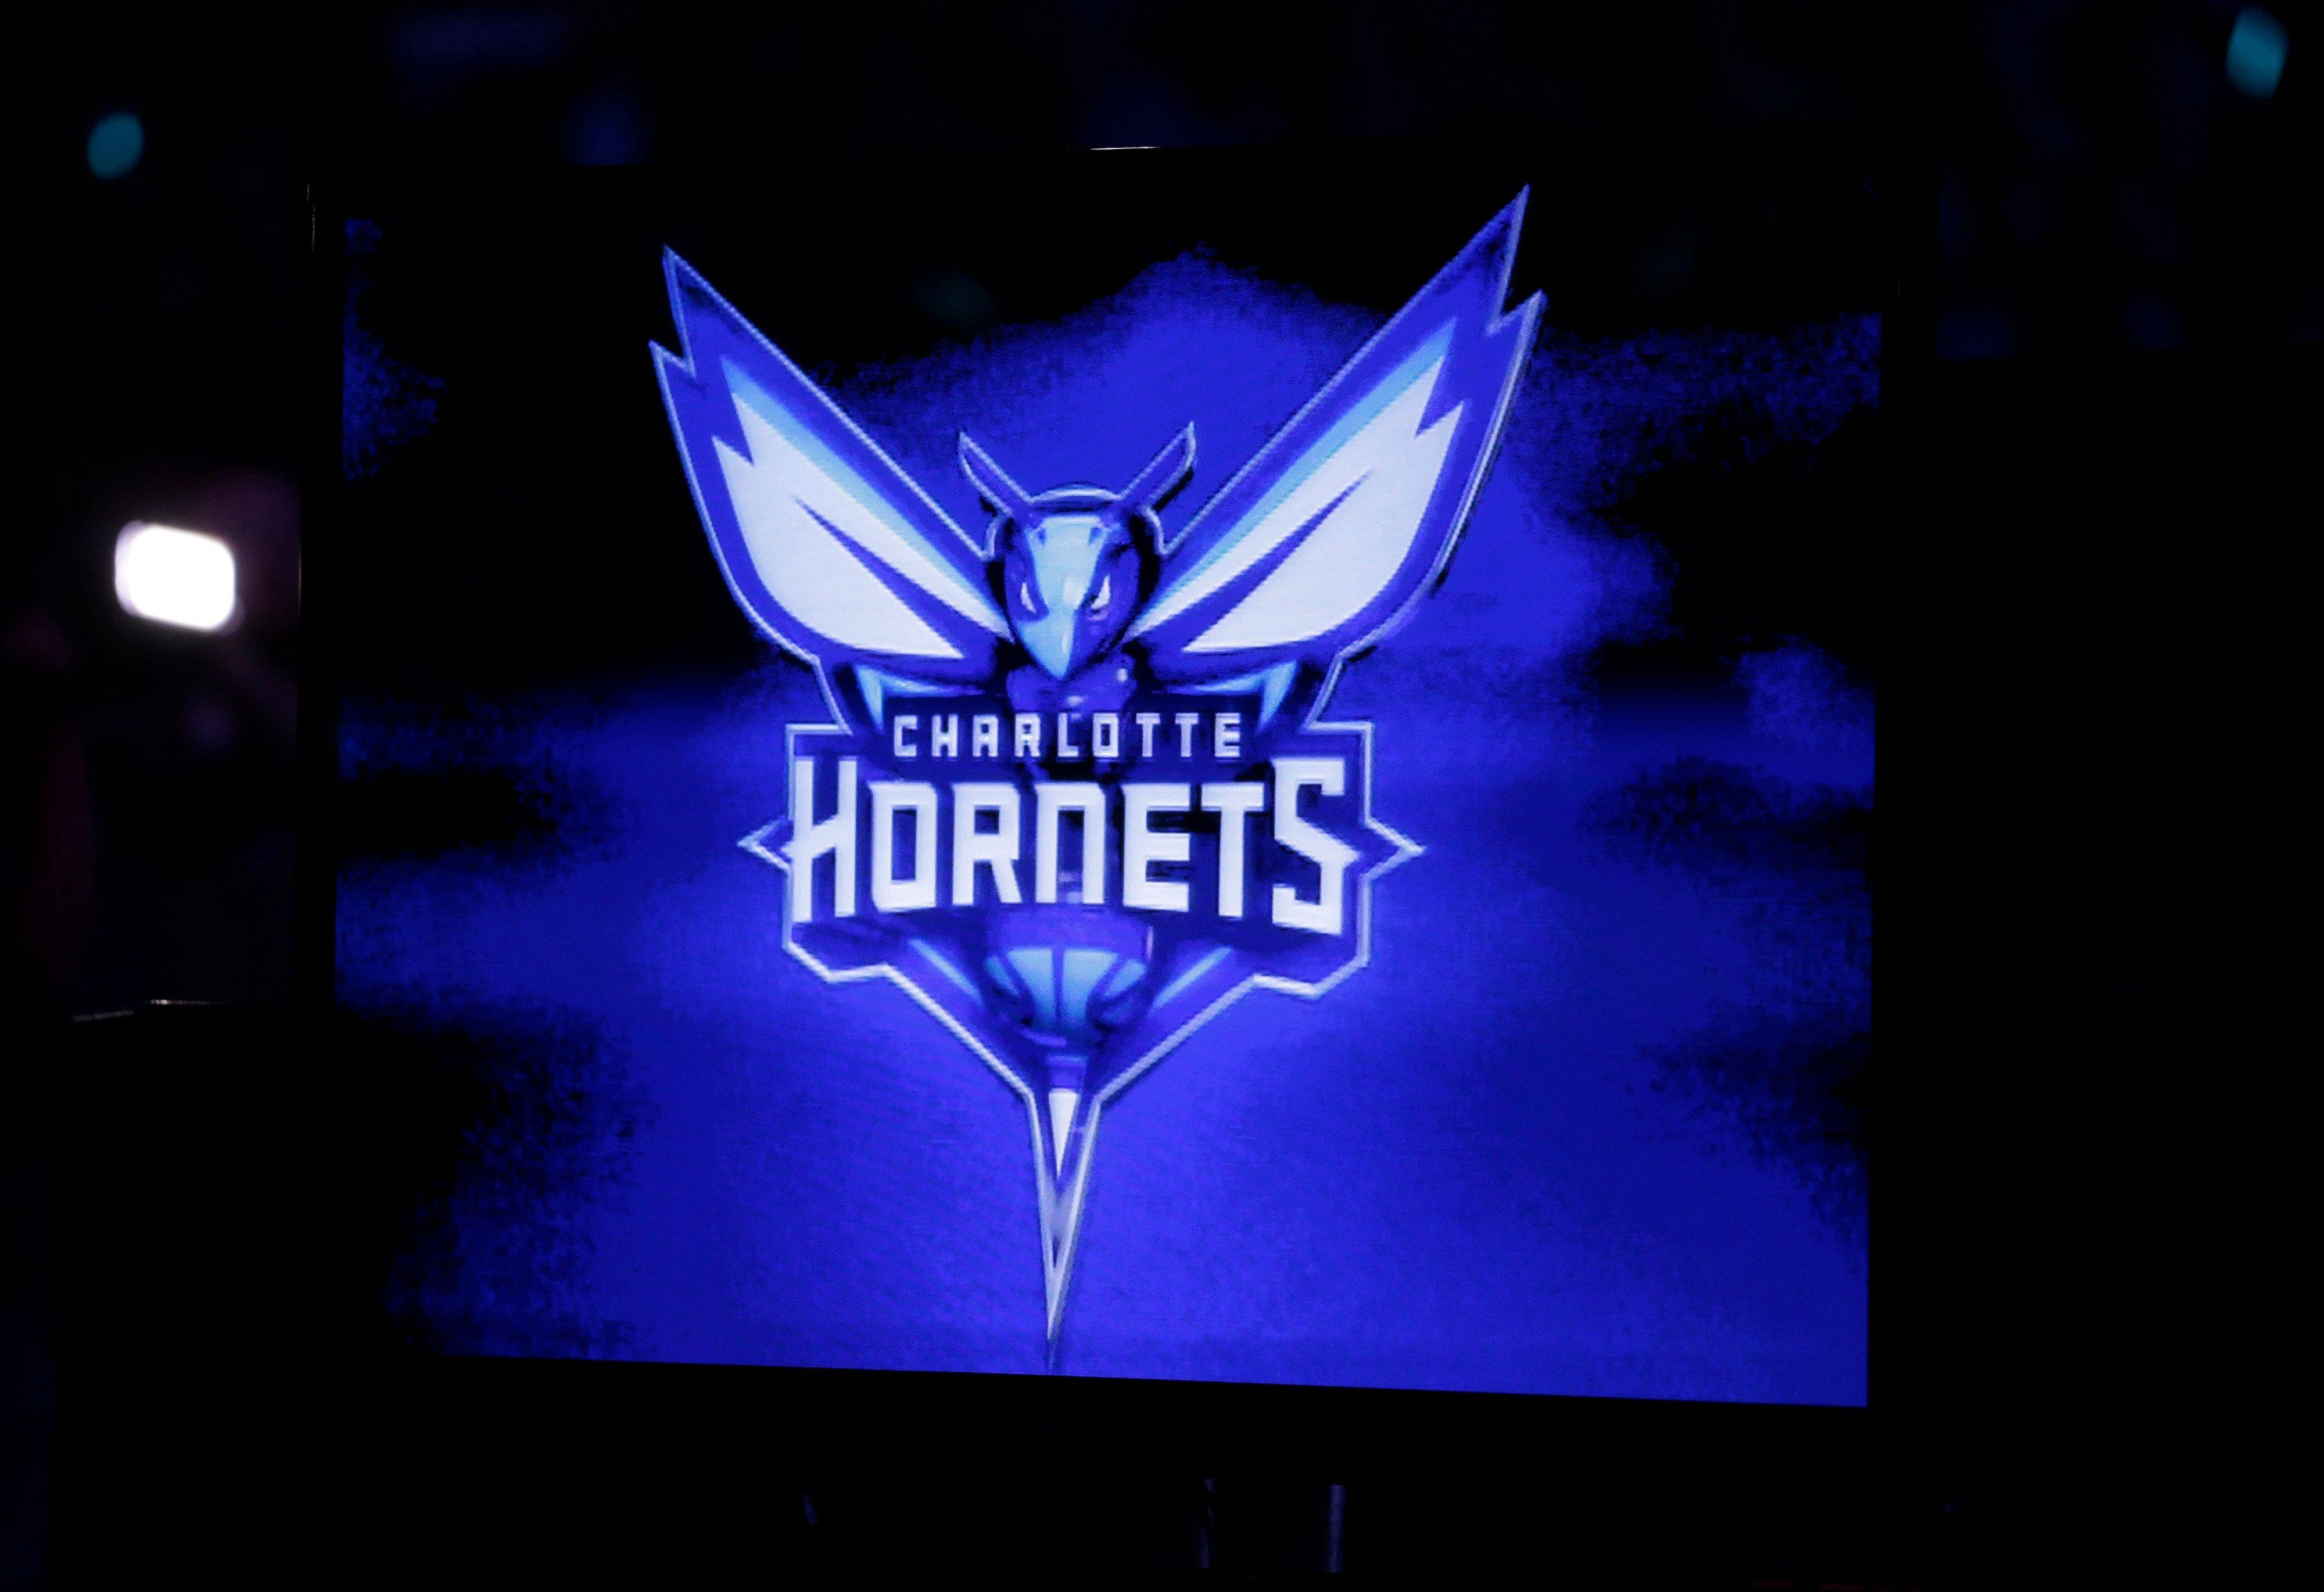 The new logo of the Charlotte Hornets is displayed on a video monitor during halftime of the game between the Charlotte Bobcats and the Utah Jazz on Saturday in Charlotte, N.C. The Bobcats will change their name to the Hornets next season.